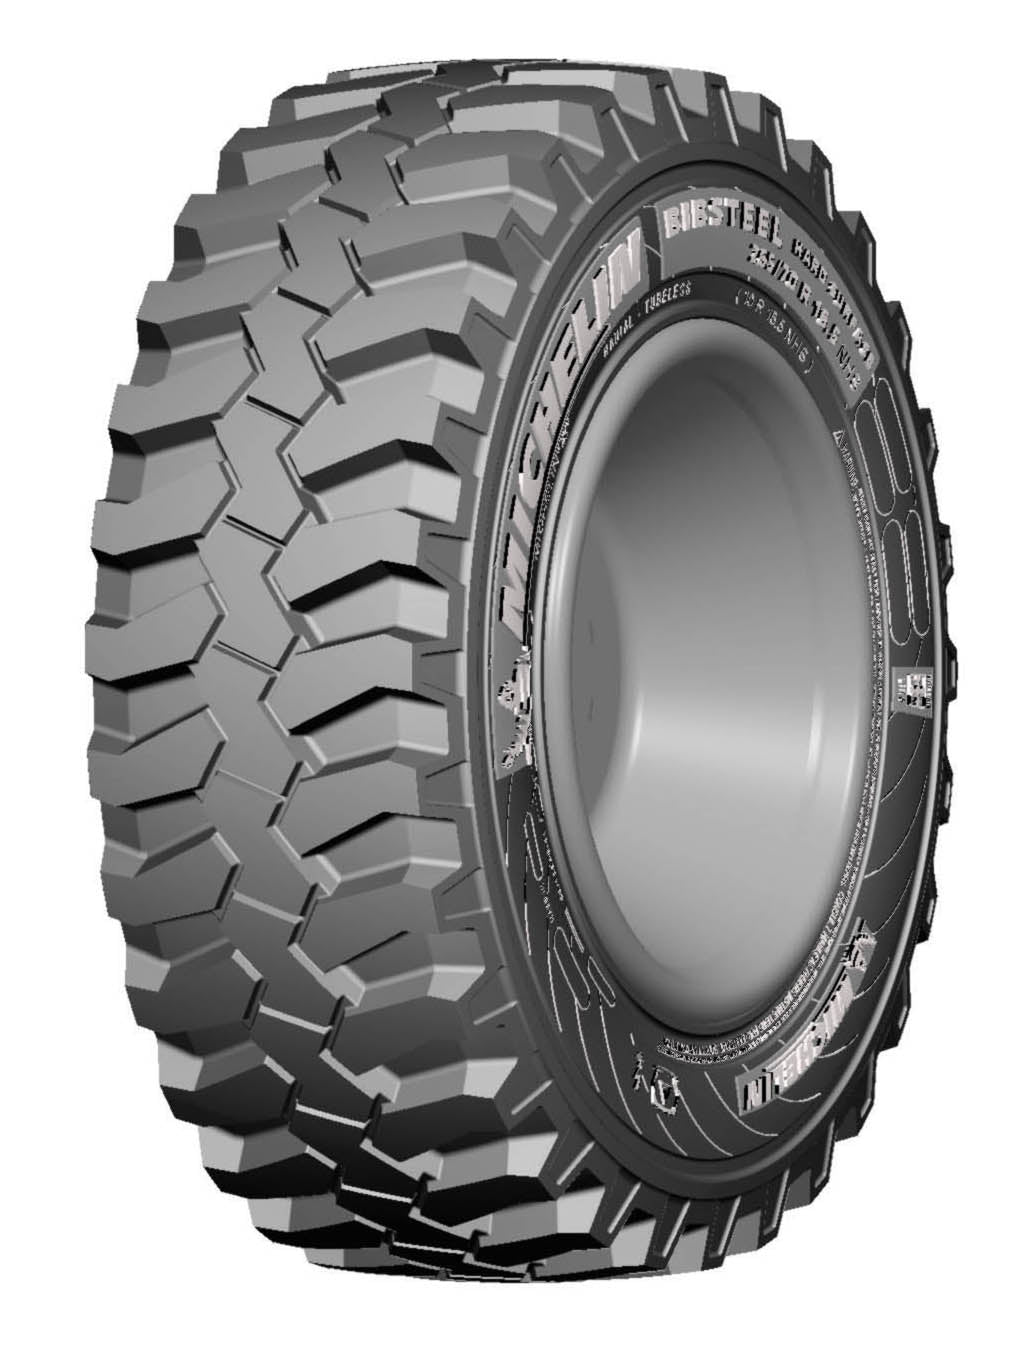 Llanta 500/70R24 BIBSTEEL HARD SURFACE